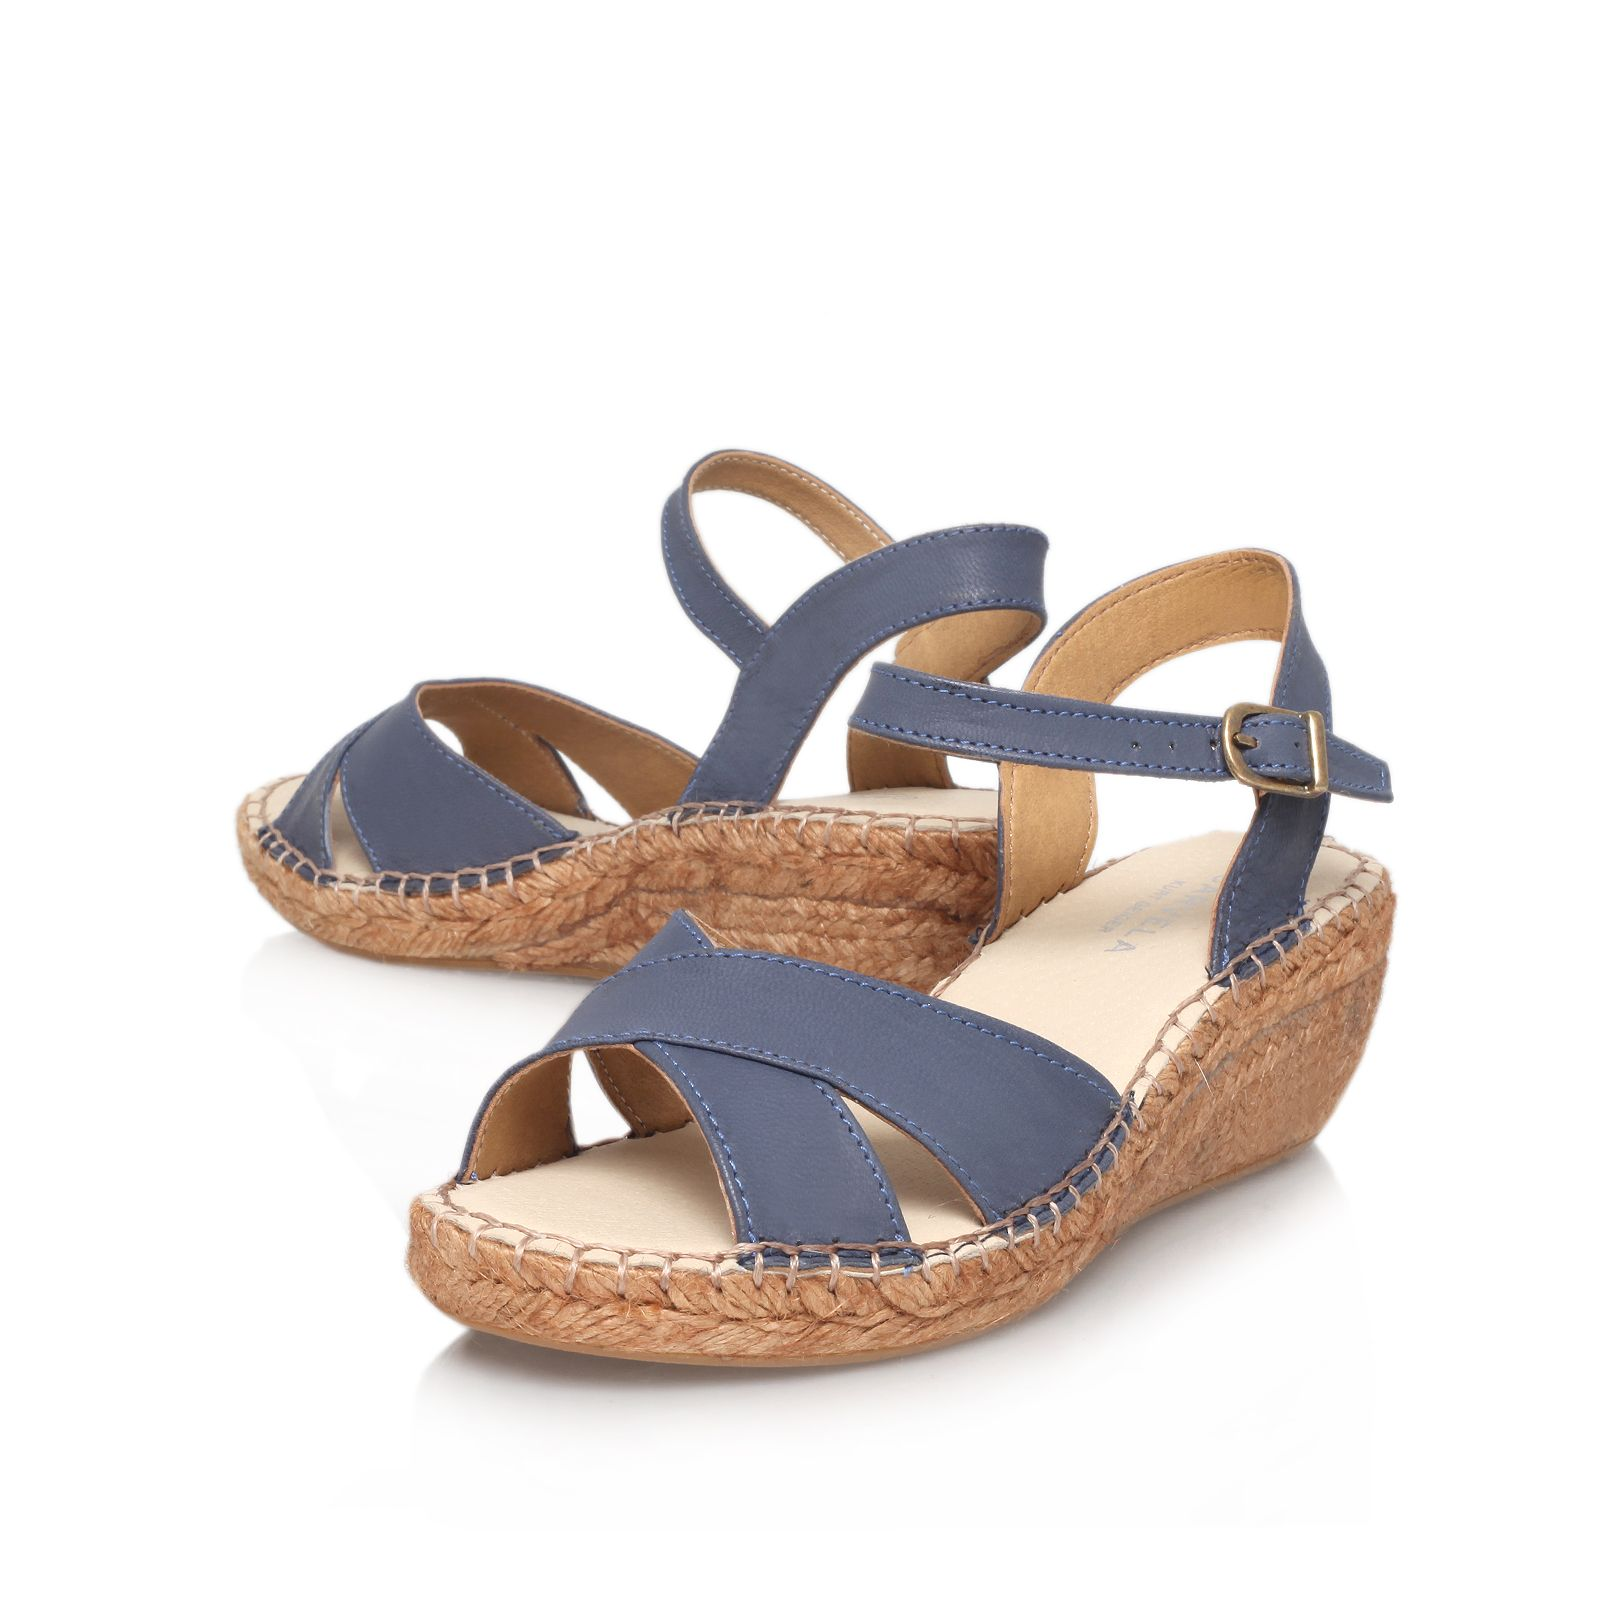 Kandy mid heel wedge sandals